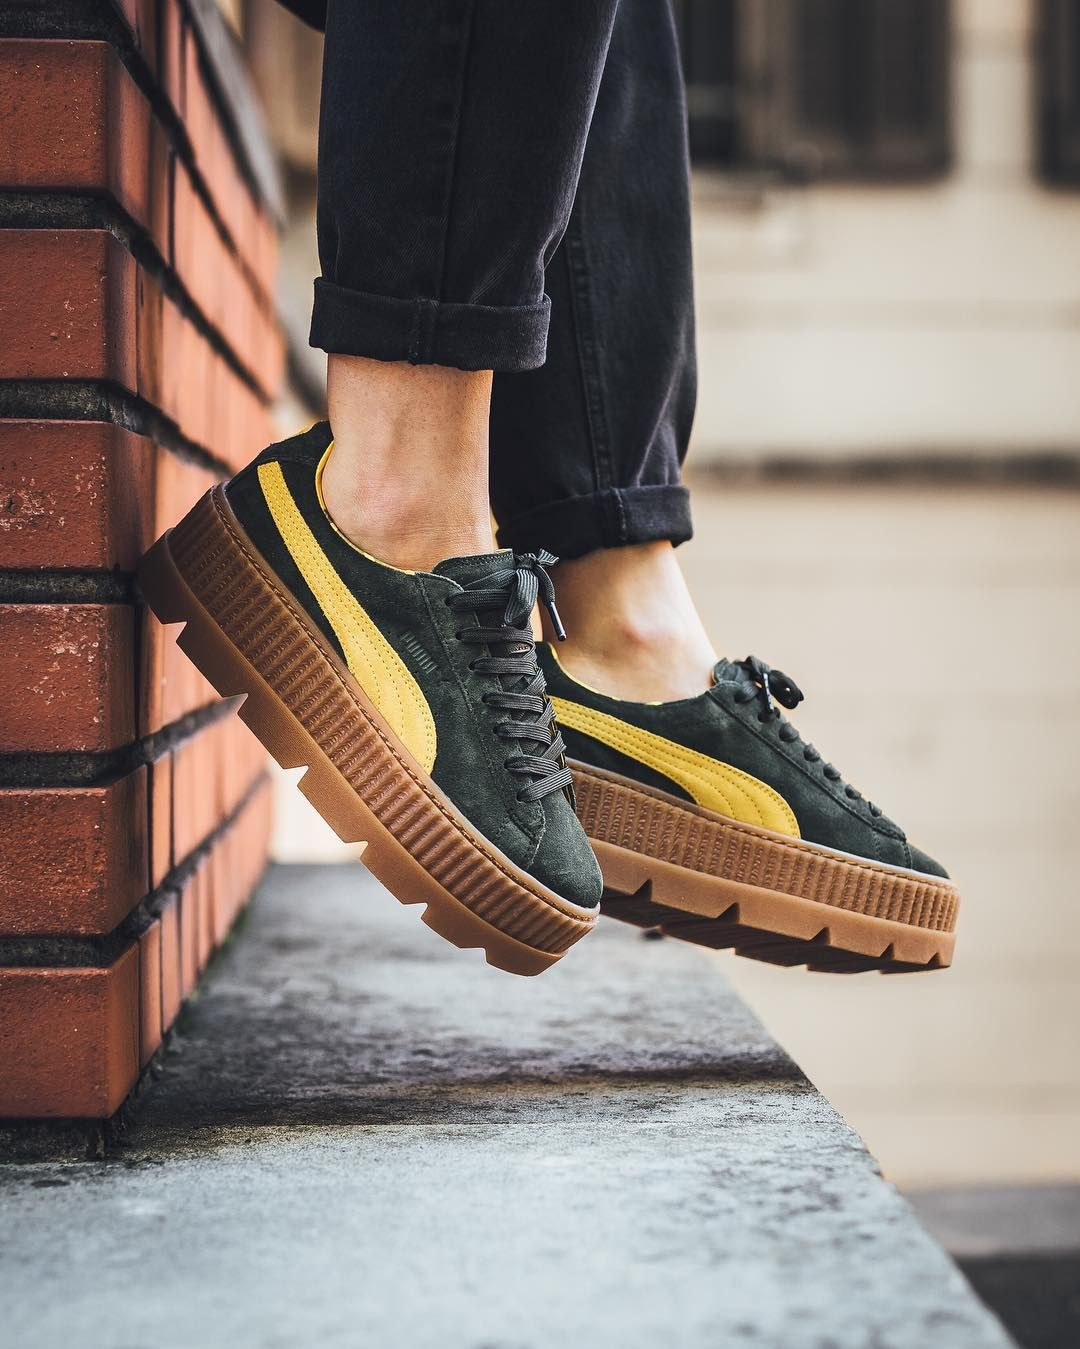 best cheap 8faac a2c89 FENTY by Rihanna x PUMA Cleated Creeper